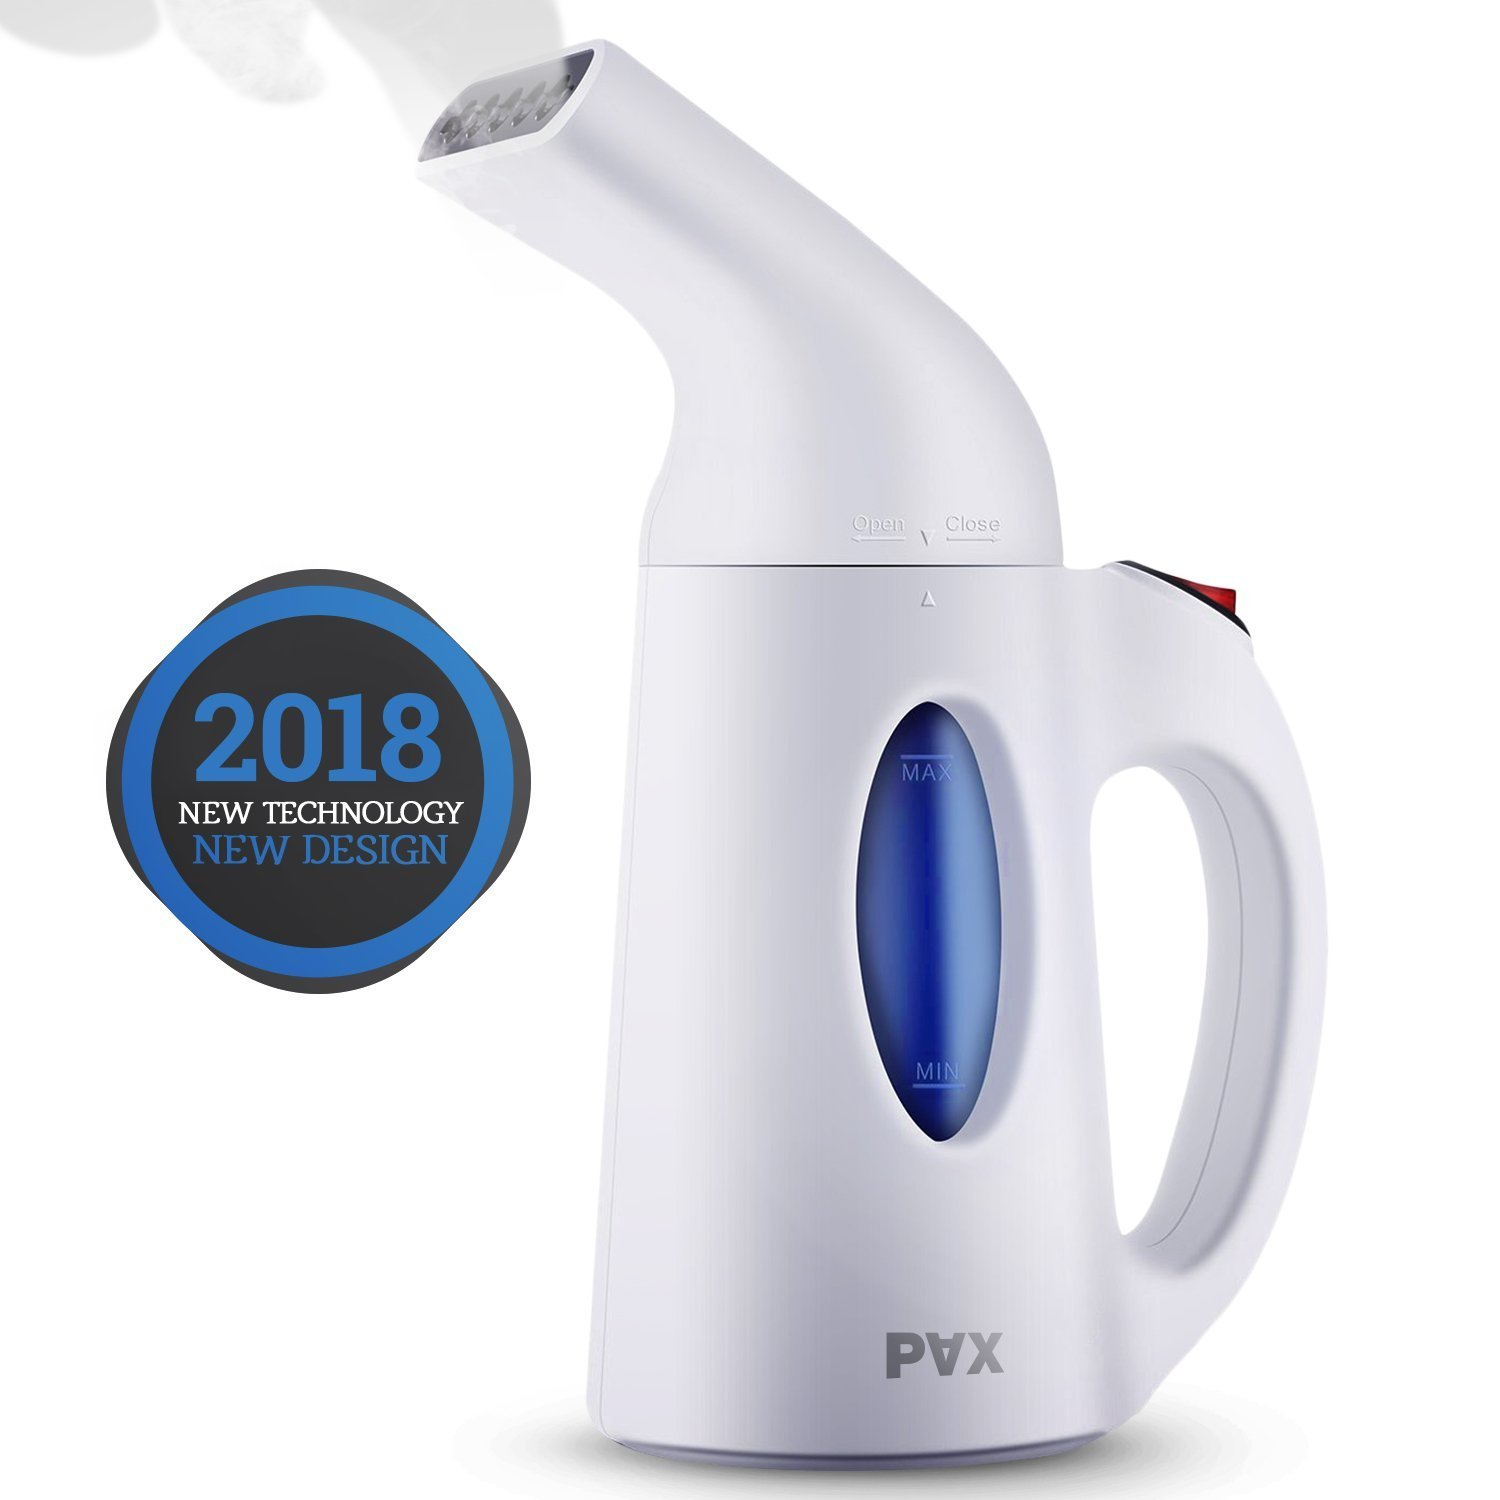 clothes steamer 2018 Powerful, Travel and Home Handheld Garment Steamer, 60 Seconds Heat-Up, Fabric Steamer With Automatic Shut-Off Safety Protection (PAX) by pax clothes steamer